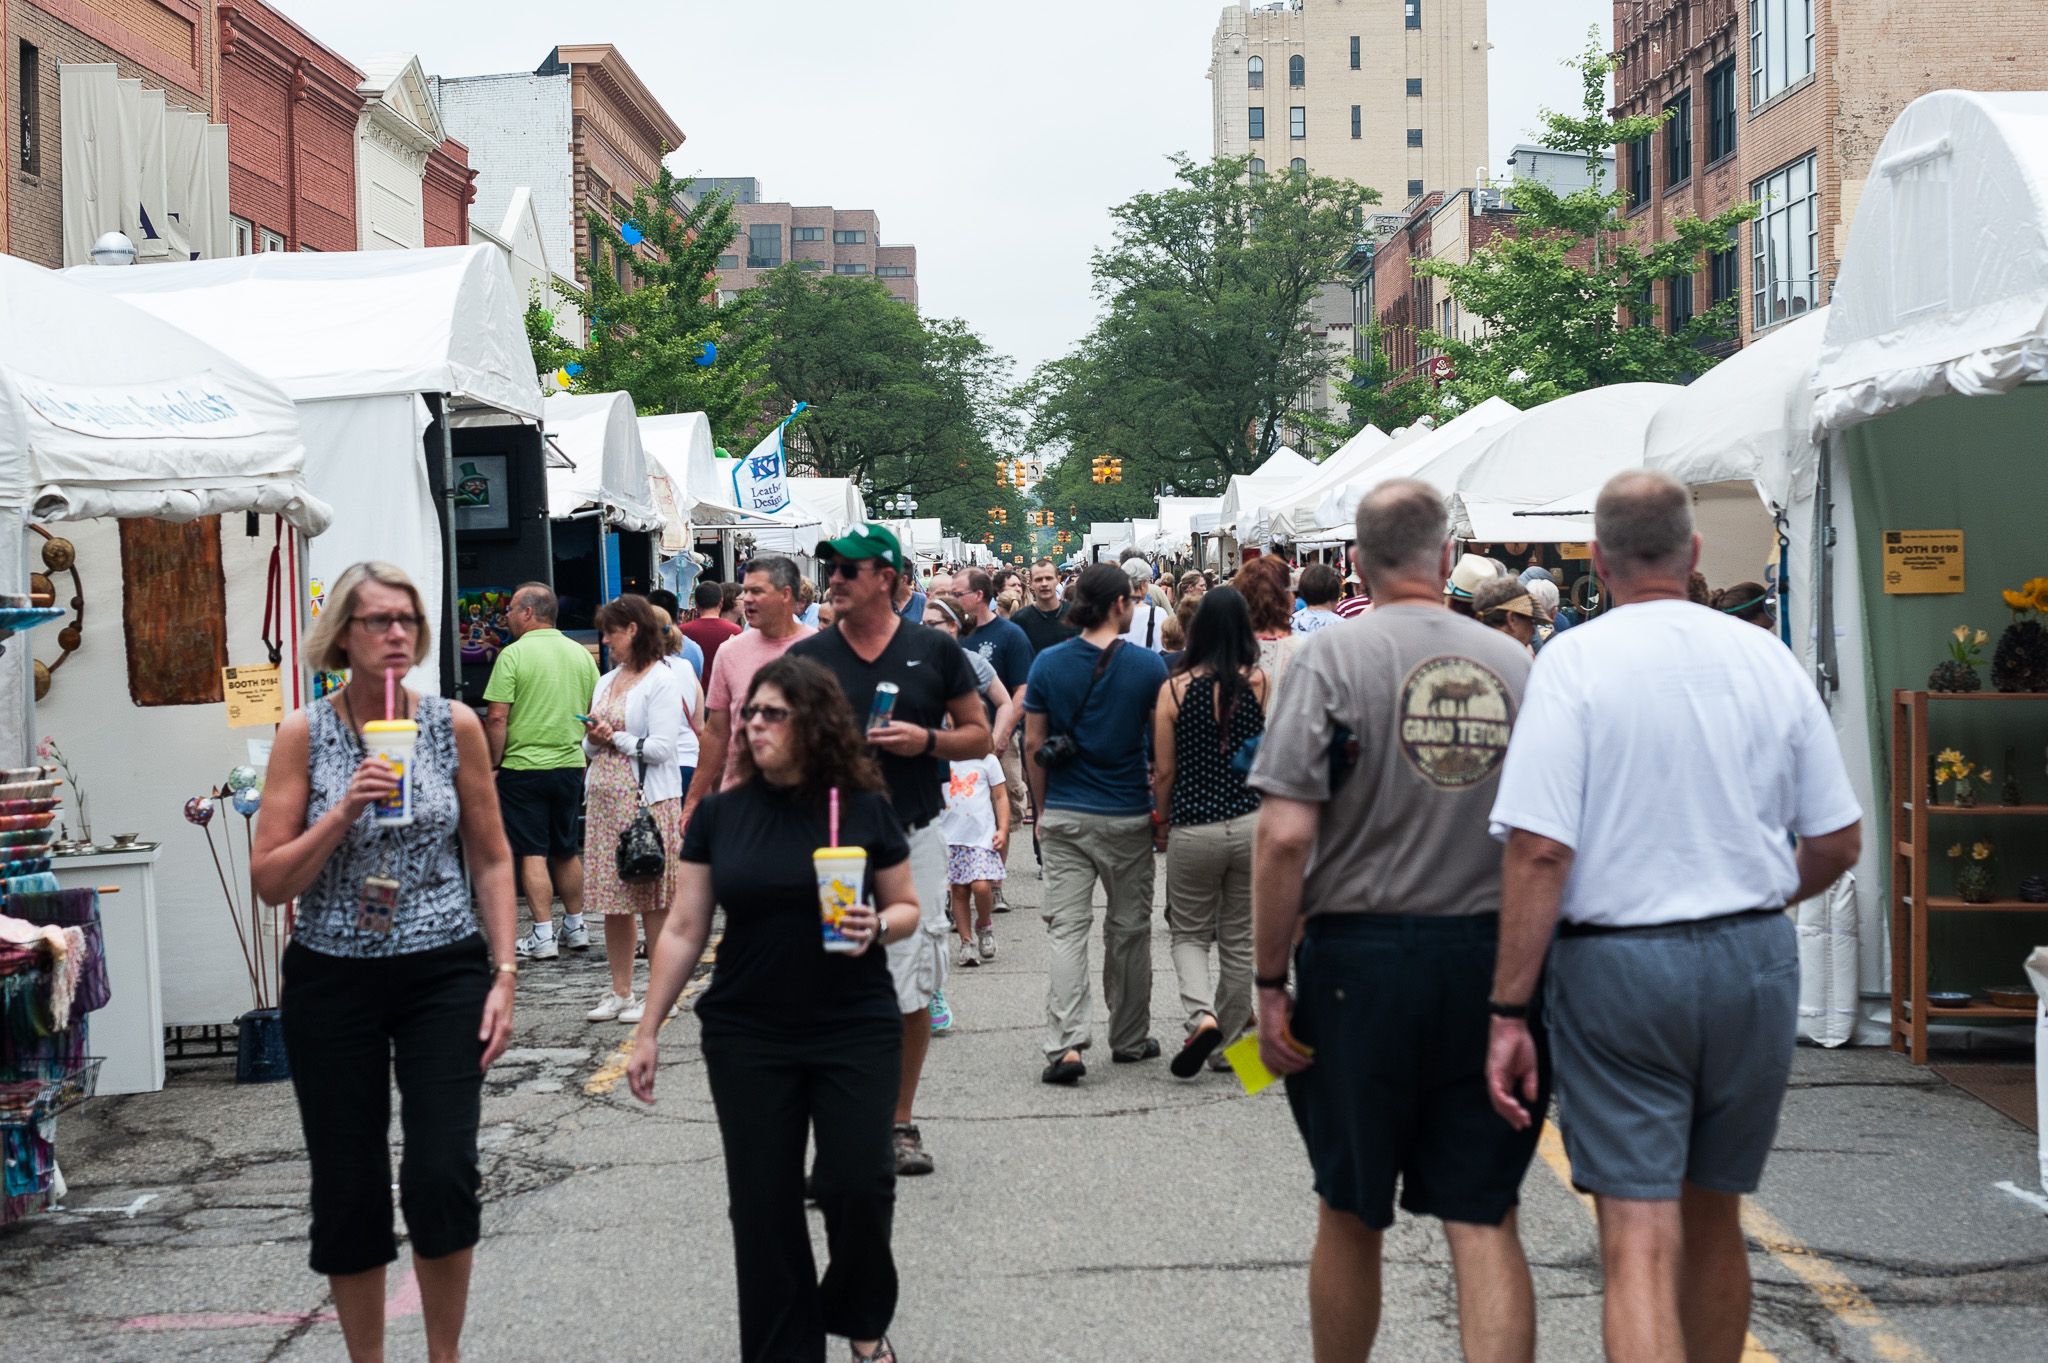 The Ann Arbor Art Fair